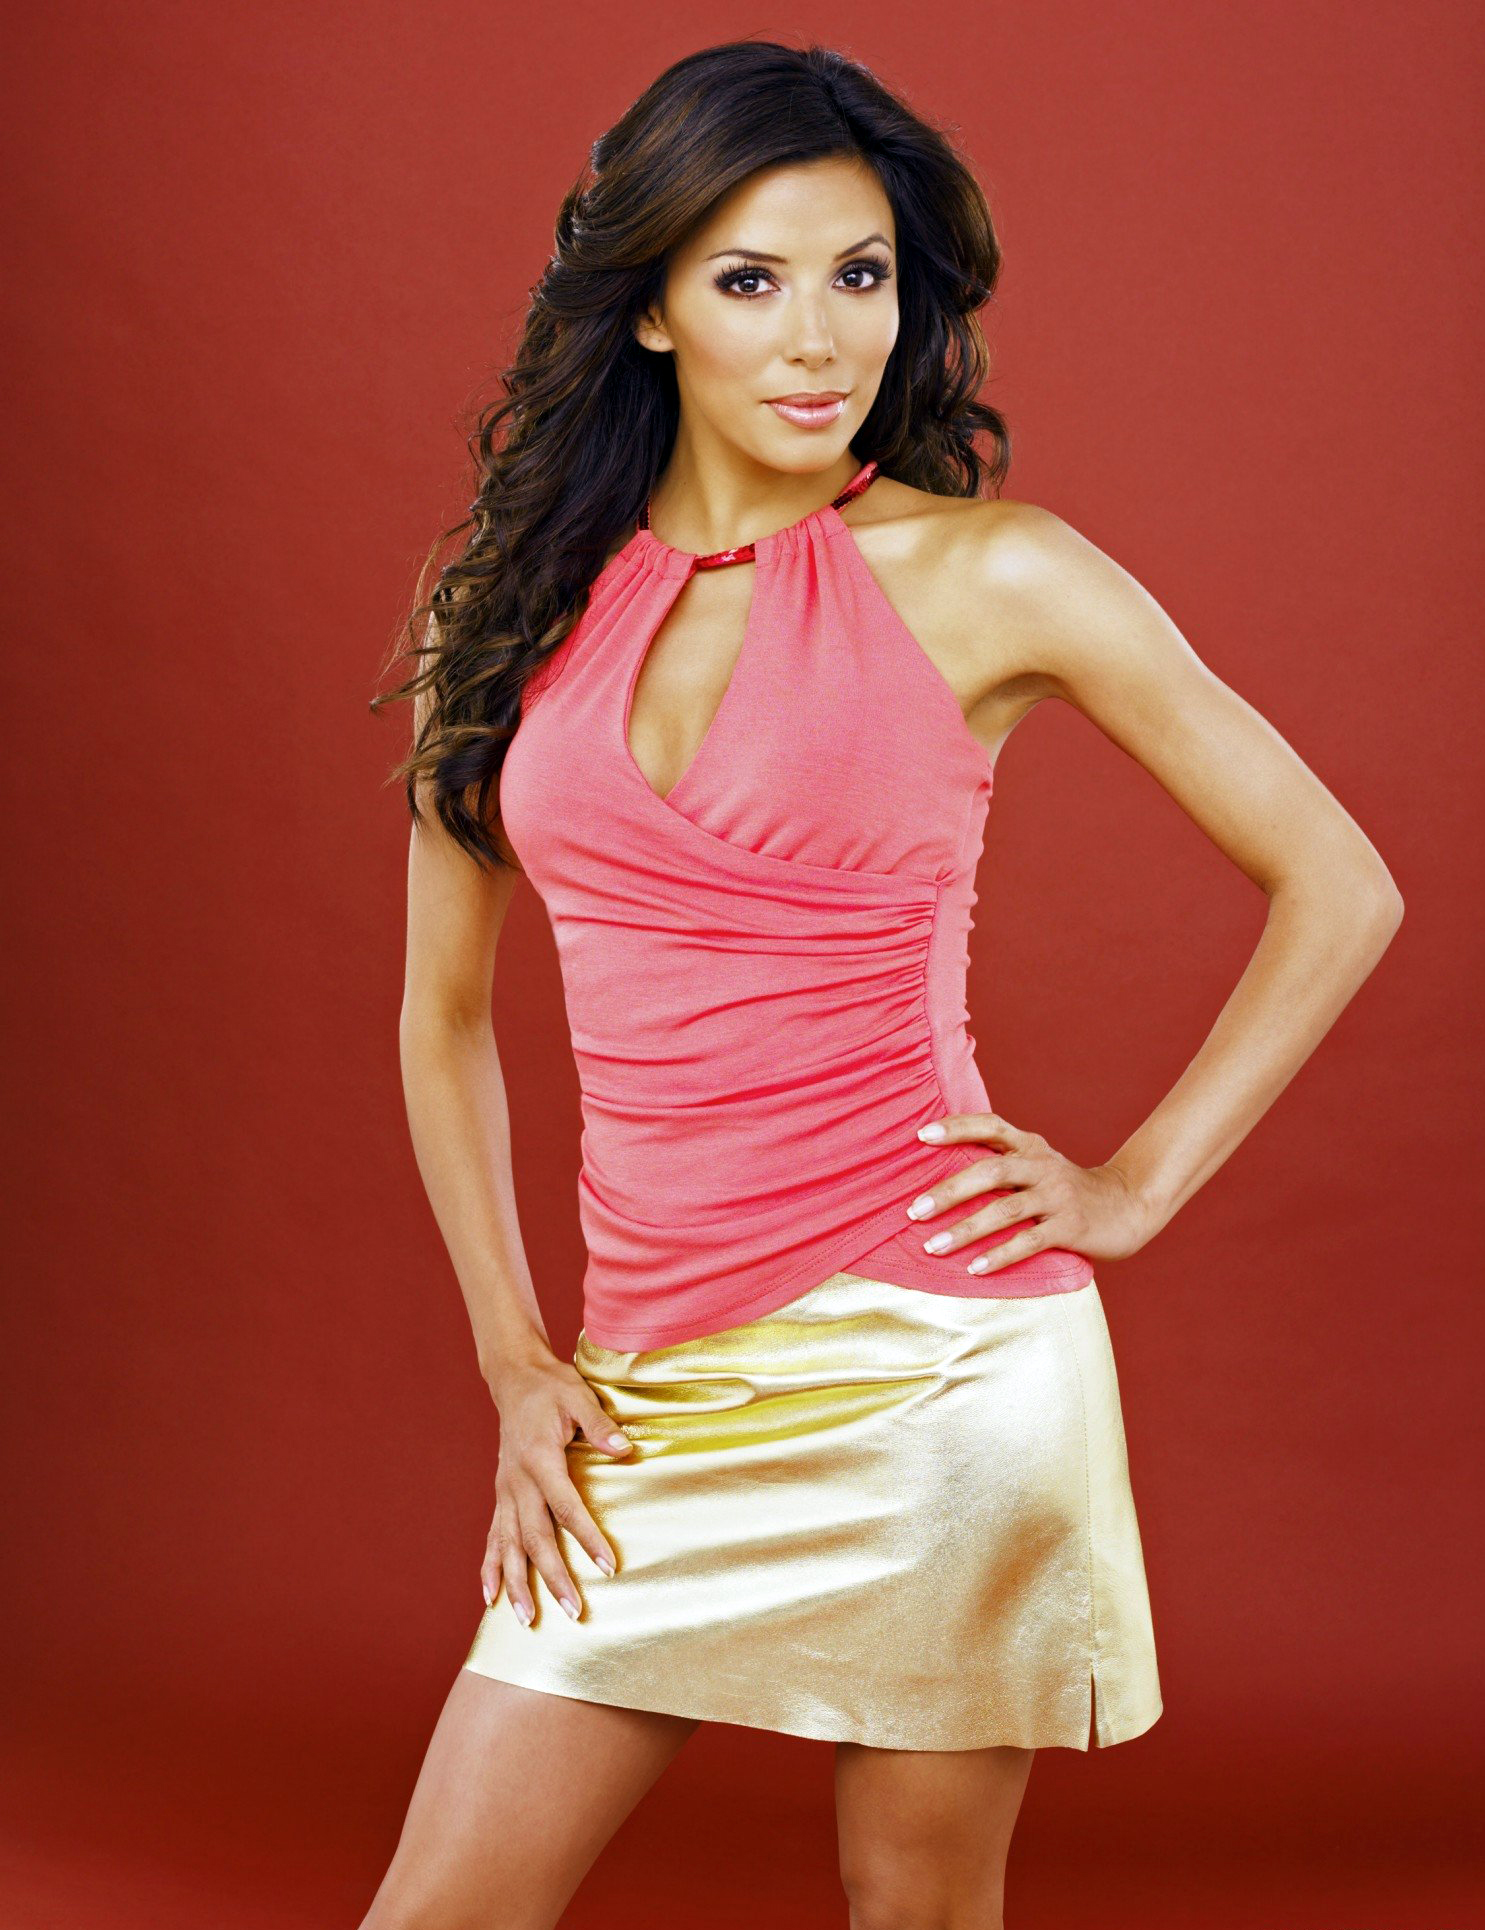 desperate housewives eva longoria as gabrielle solis dvdbash. Black Bedroom Furniture Sets. Home Design Ideas